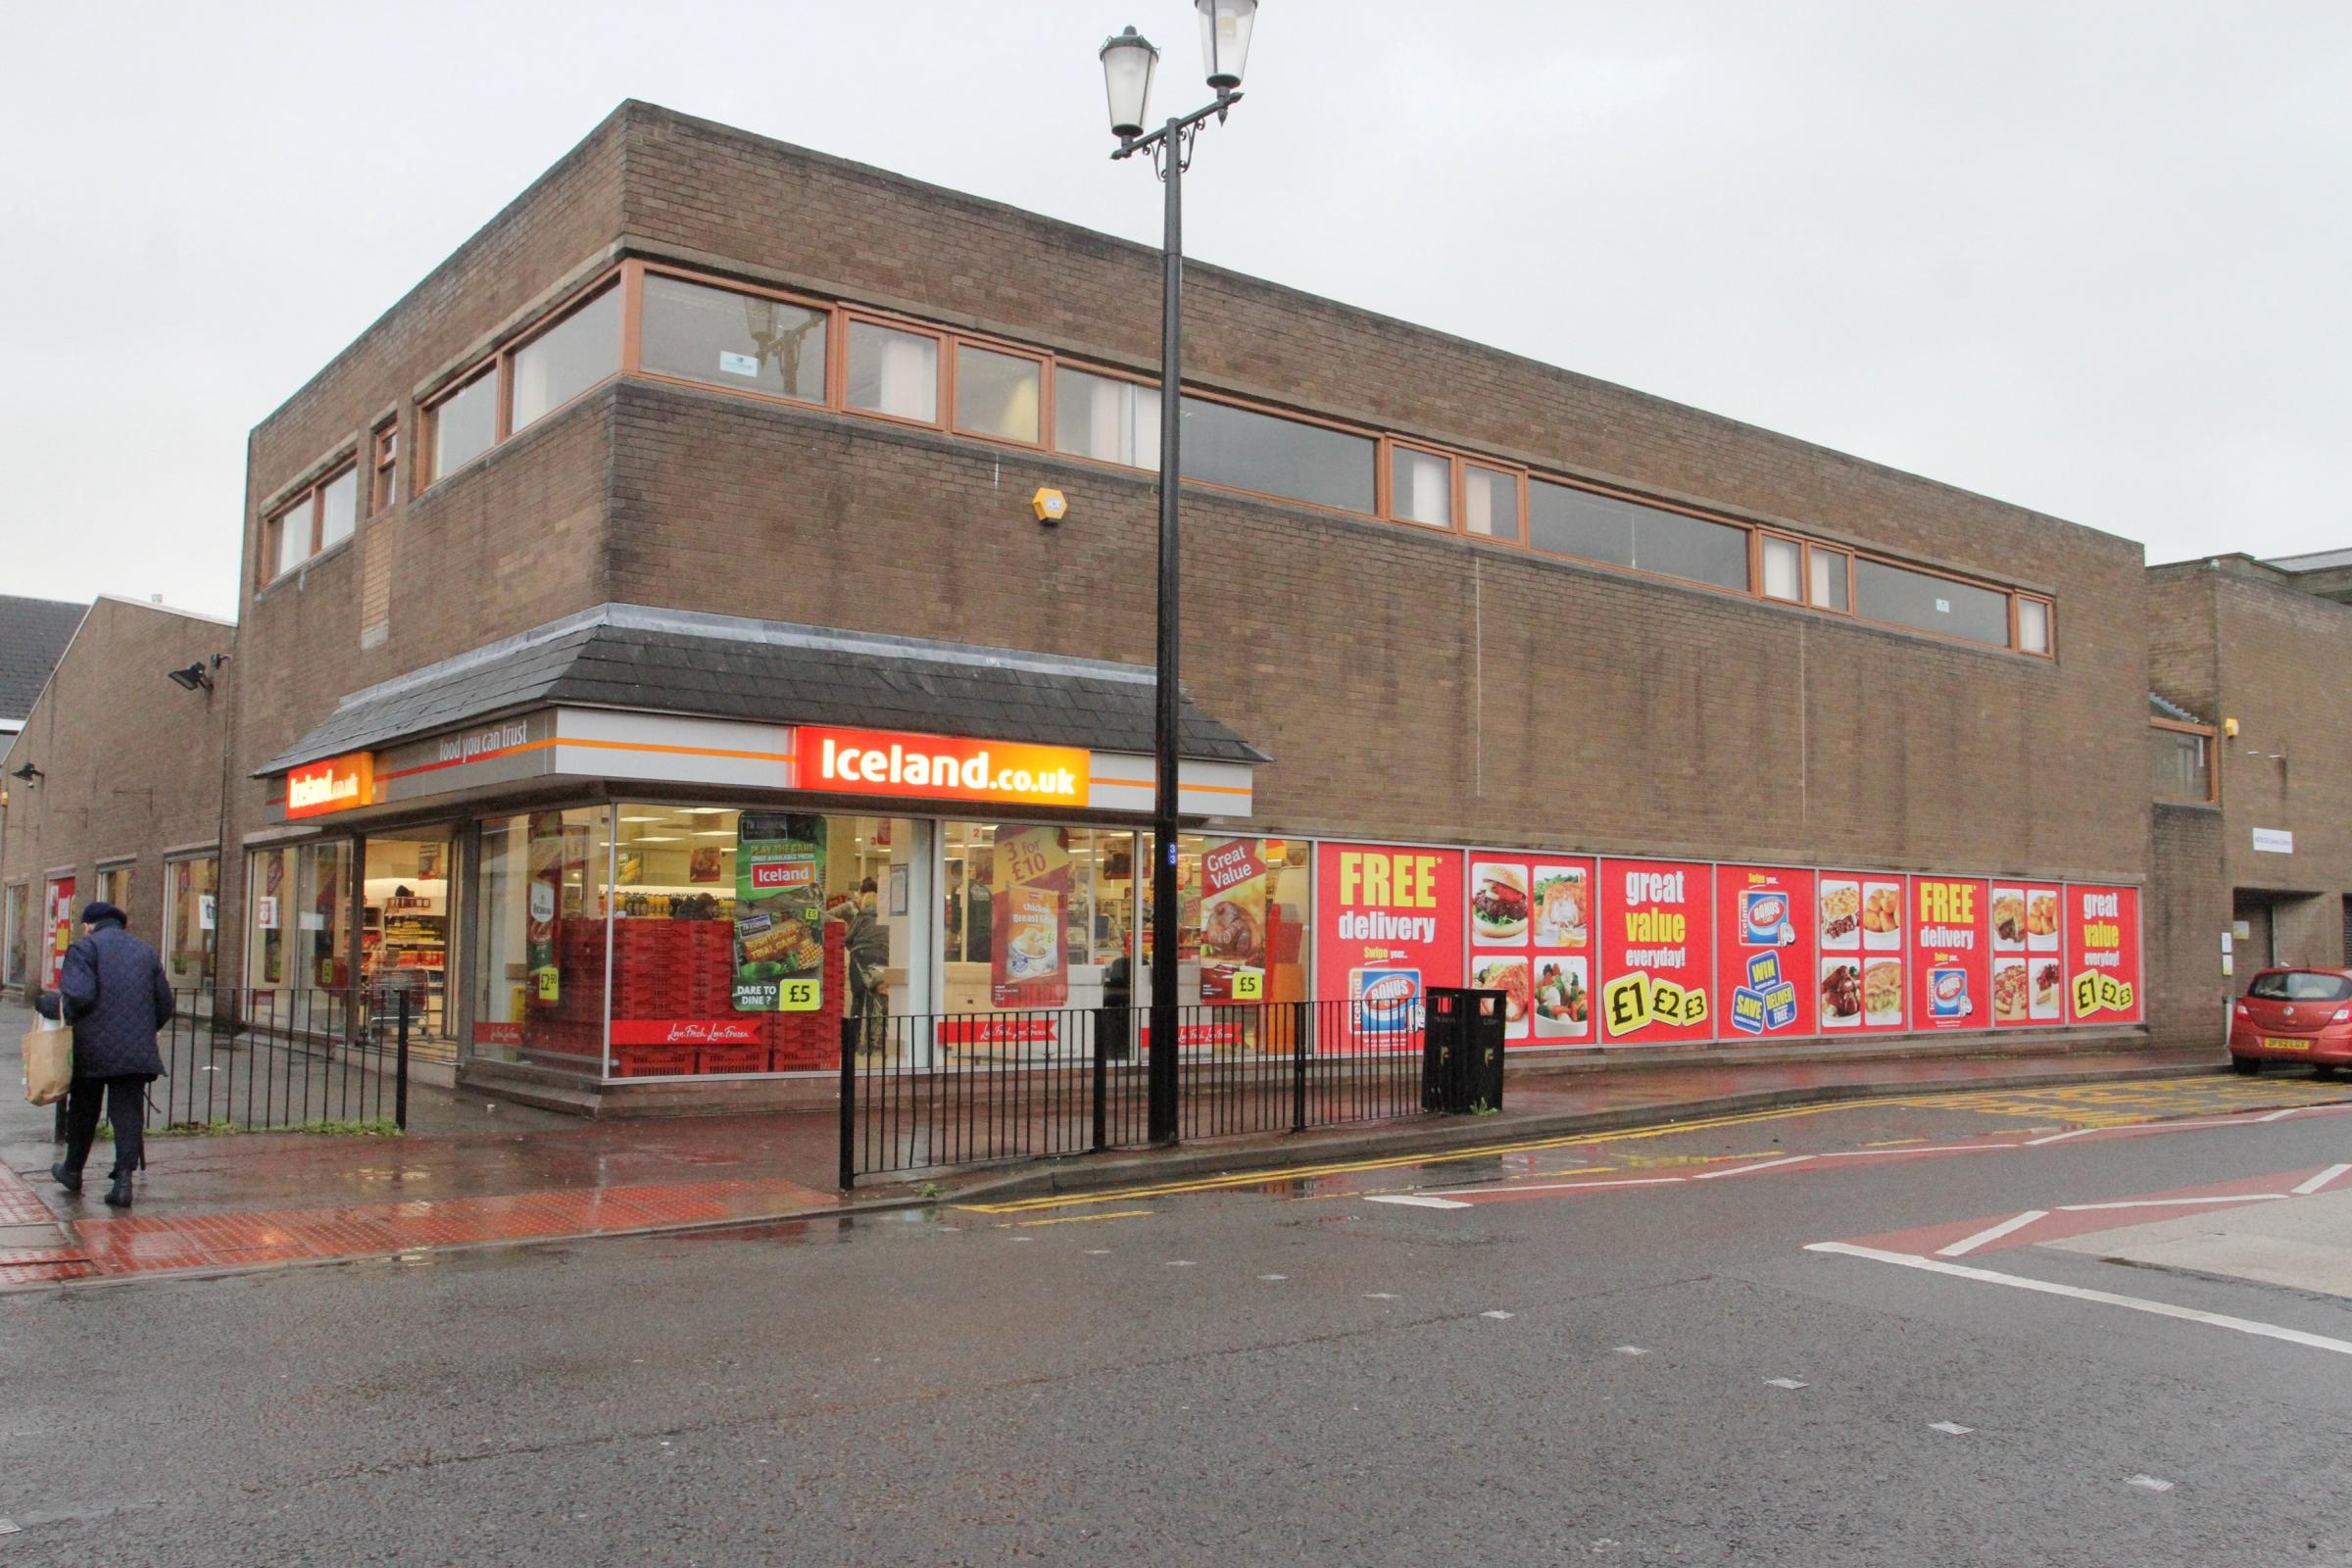 Iceland store in Mold, Flintshire